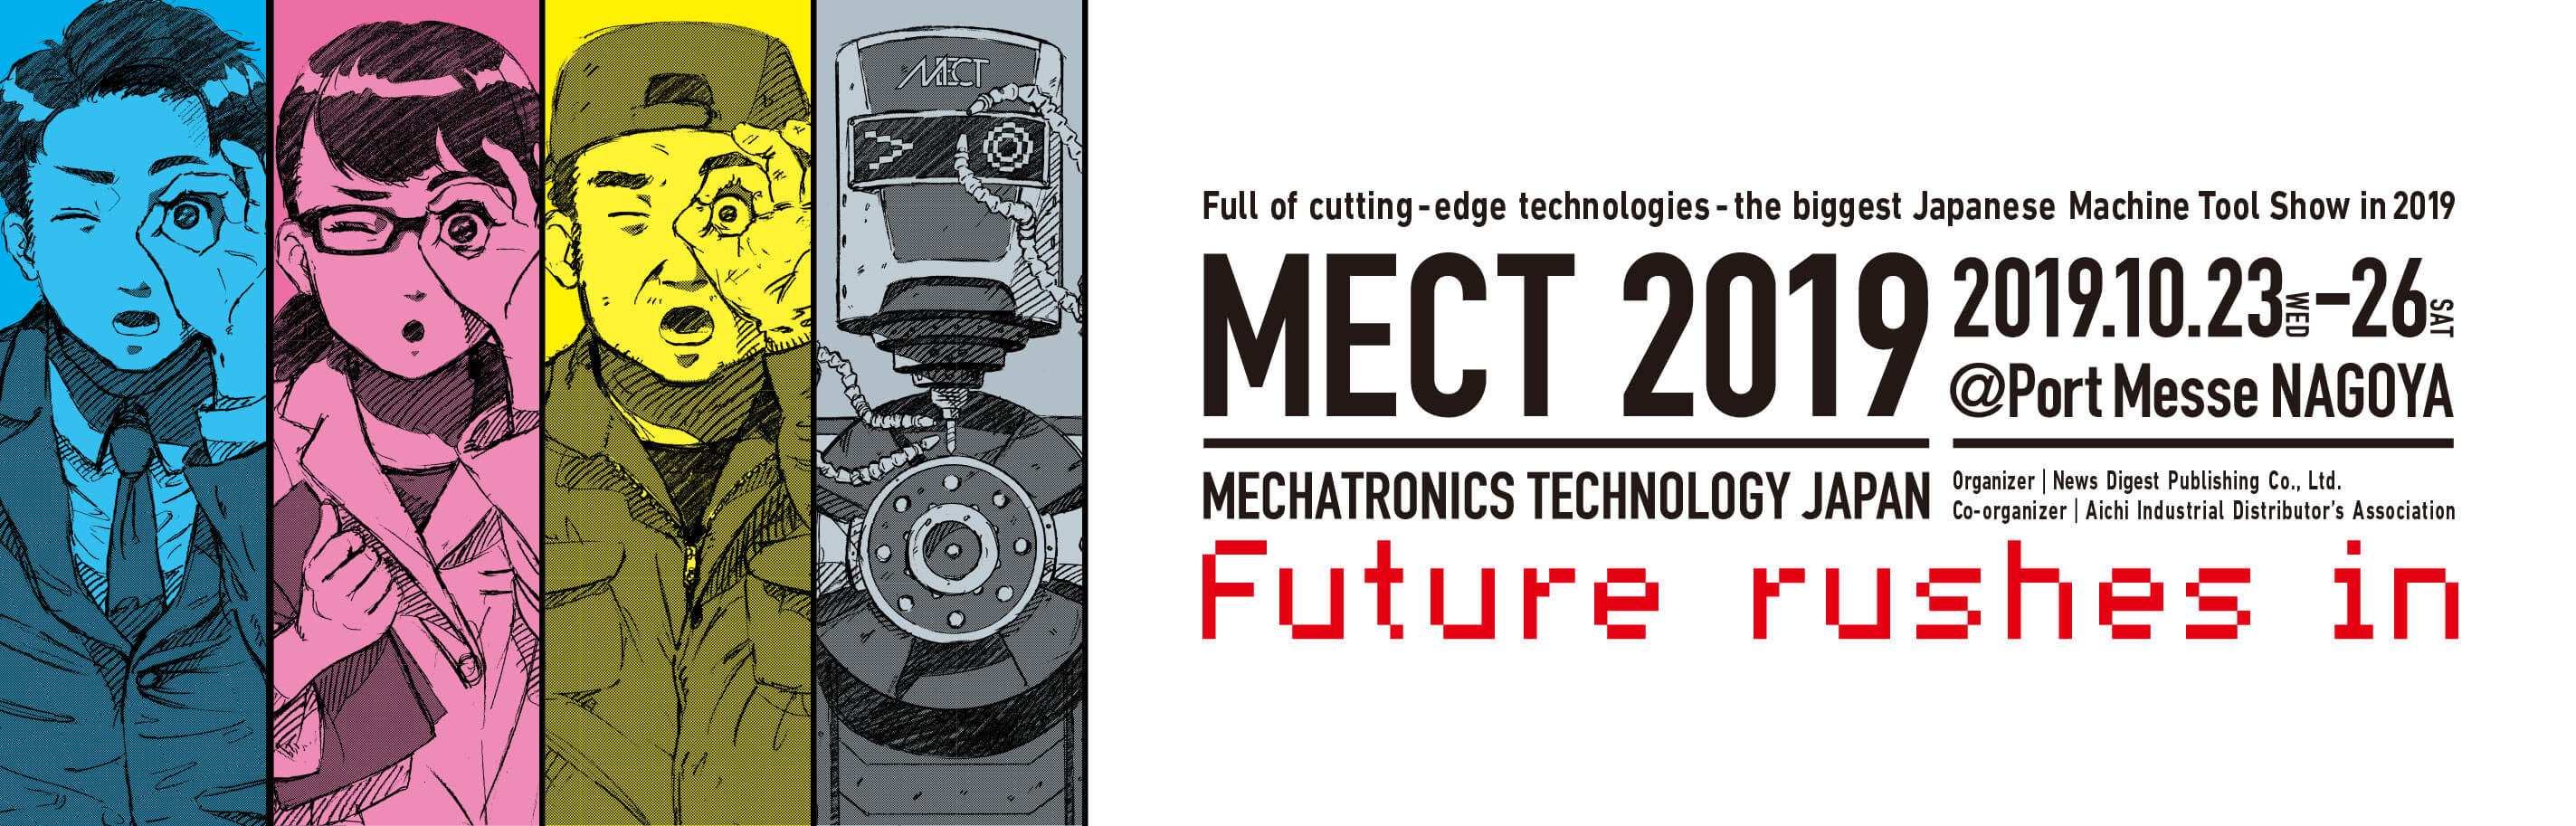 Full of cutting -edge technologies - the biggest machine tool show in JAPAN